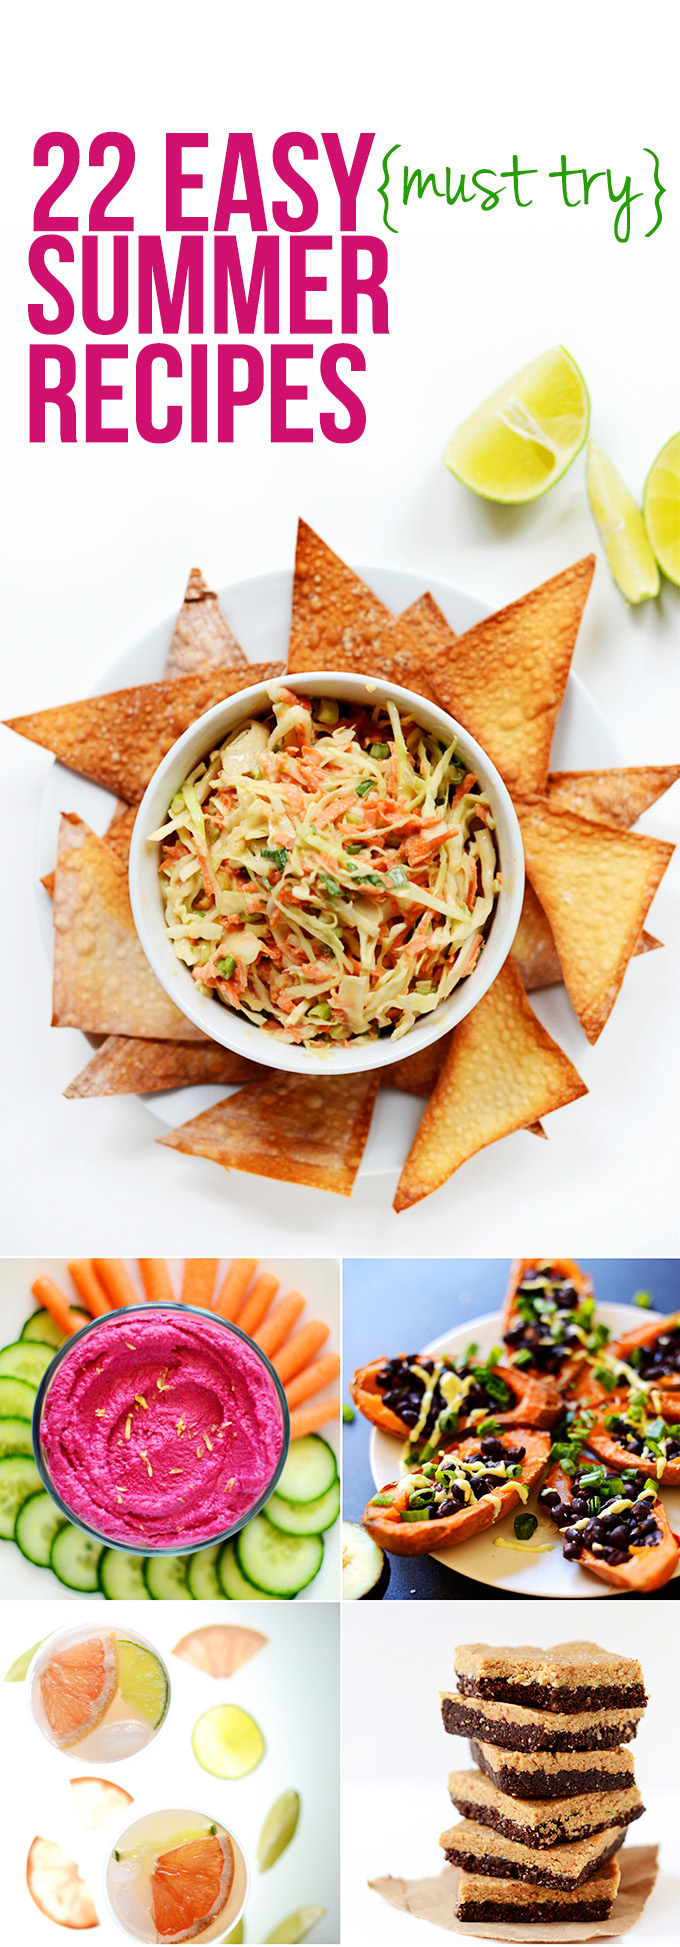 Easy Summer Lunch Ideas Easy summer recipes minimalist baker recipes 22 easy summer recipe ideas that require little to no heat and perfect for sisterspd